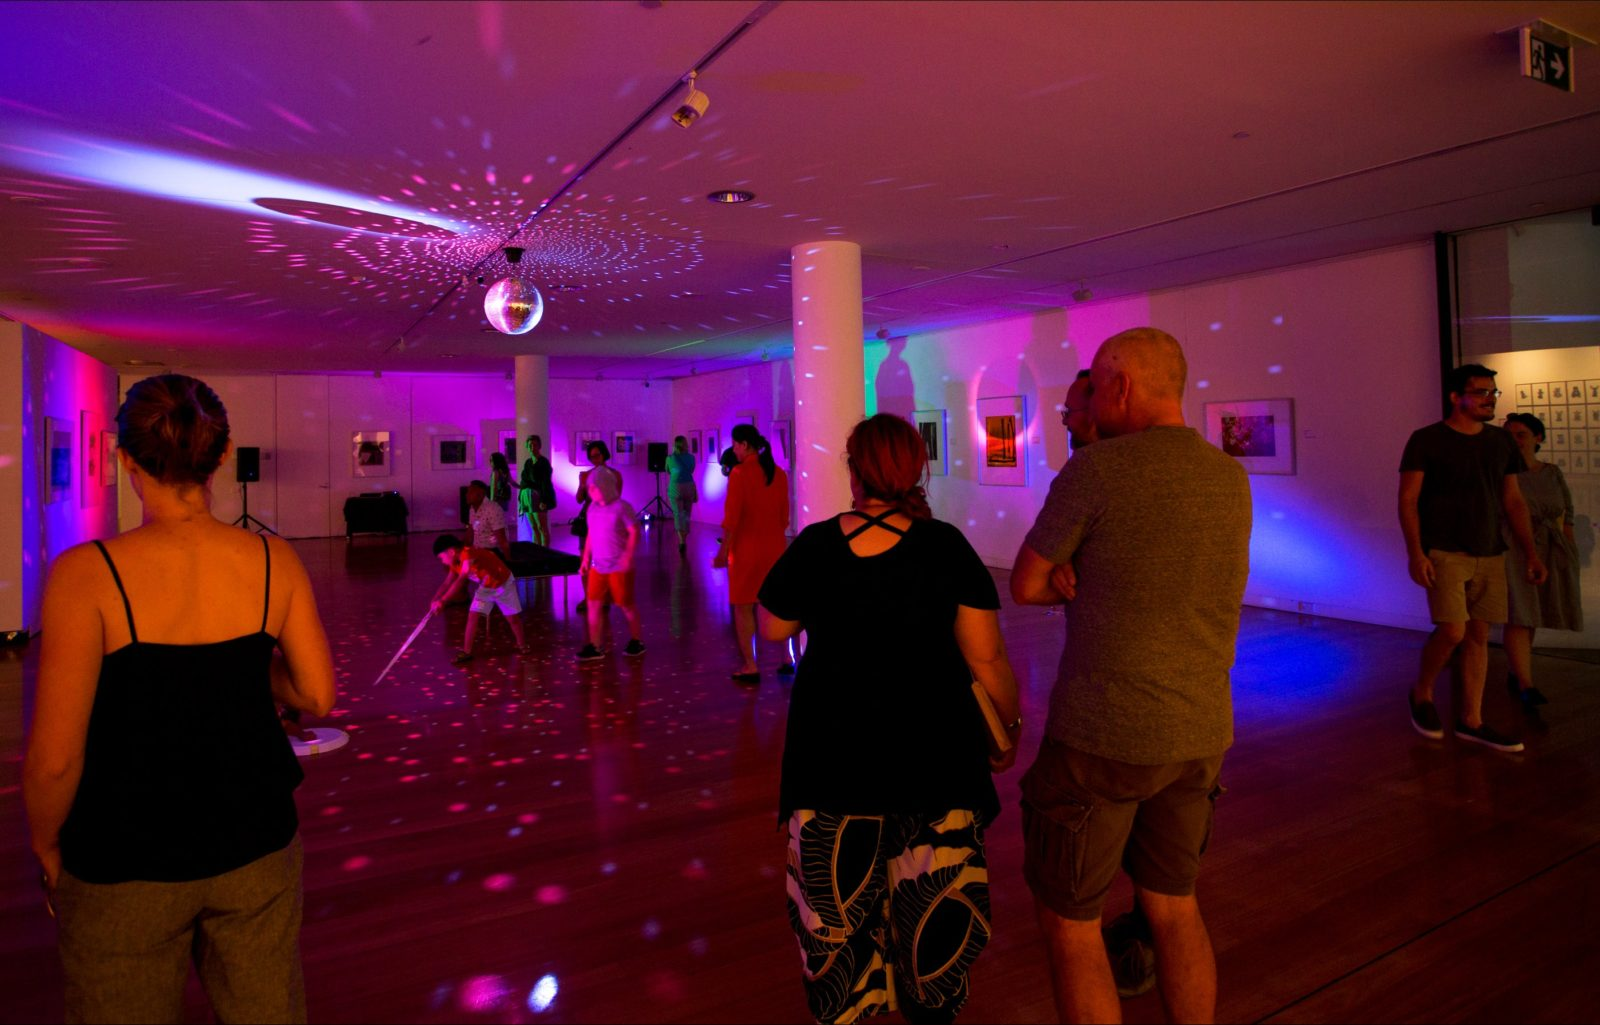 Revellers party in the Wagga Wagga Art Gallery